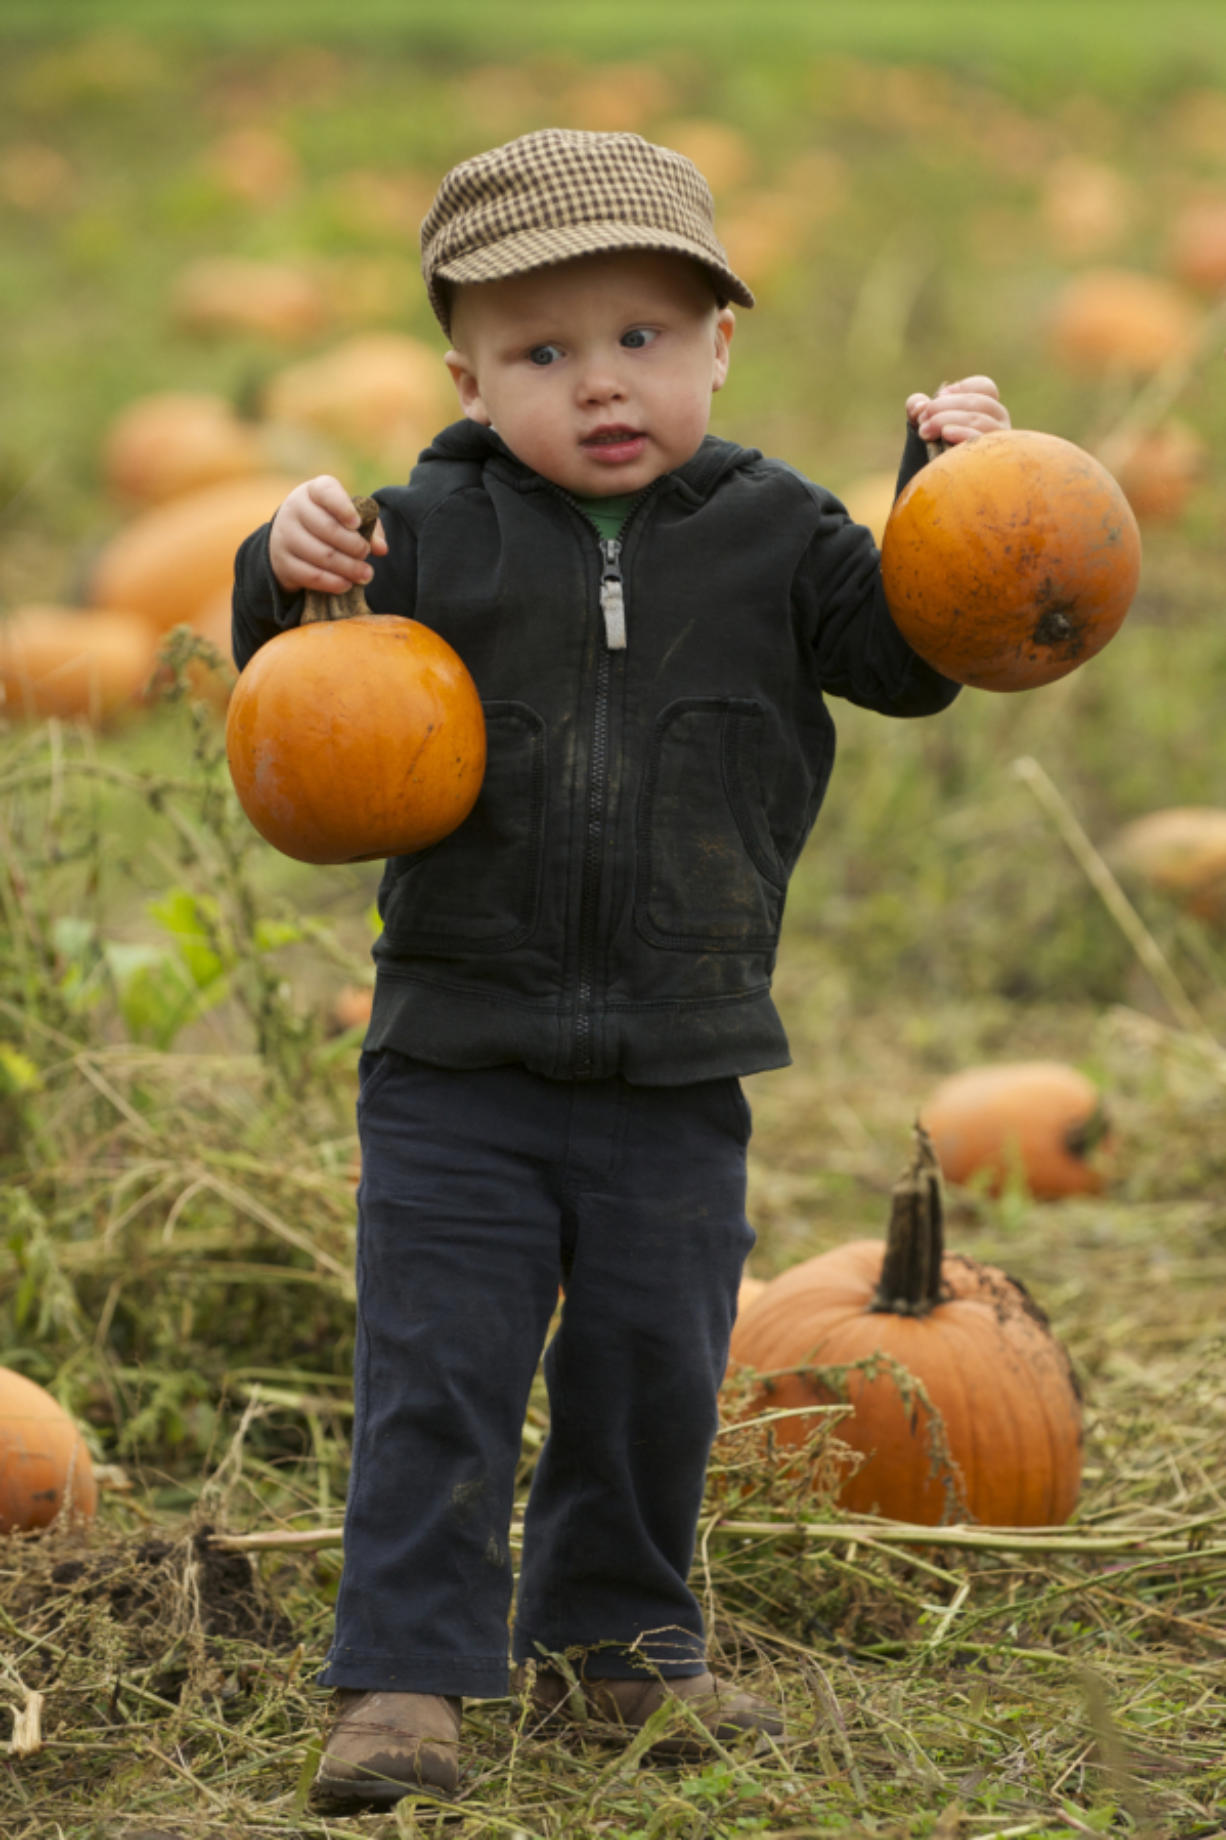 Benji Lee, 2, from Battle Ground, finds two perfect pumpkins at the Pumpkin Festival at Pomeroy Living History Farm.